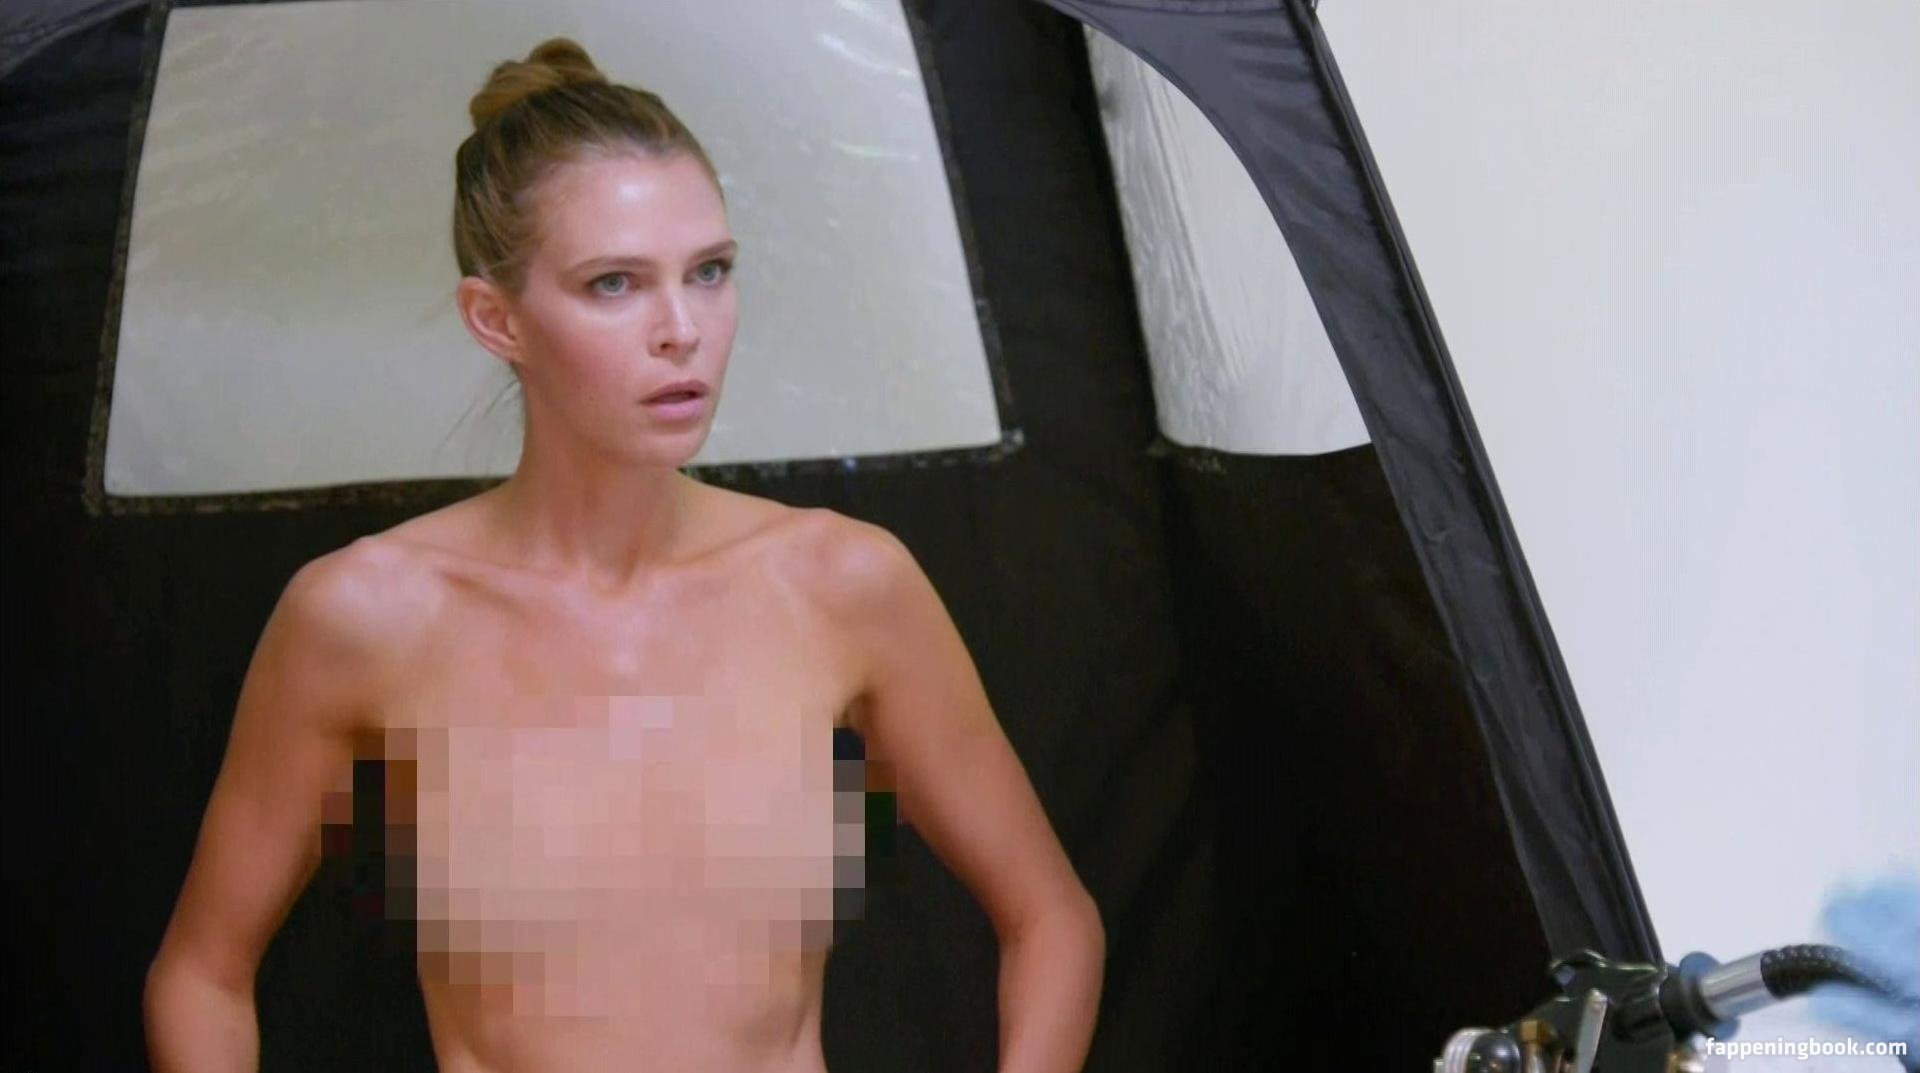 Sara foster nude pictures